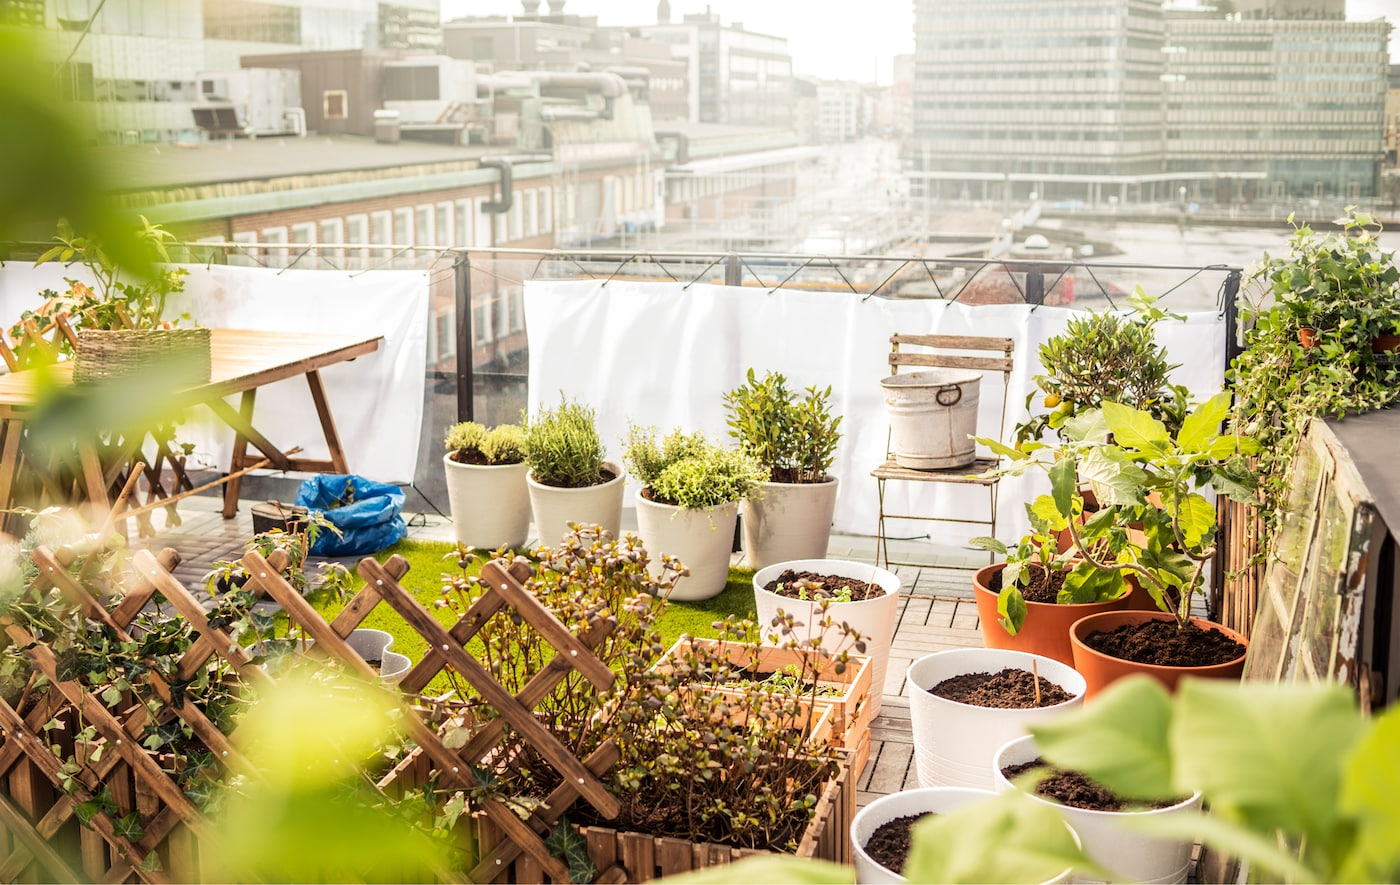 A small rooftop garden is set up with a patch of grass,